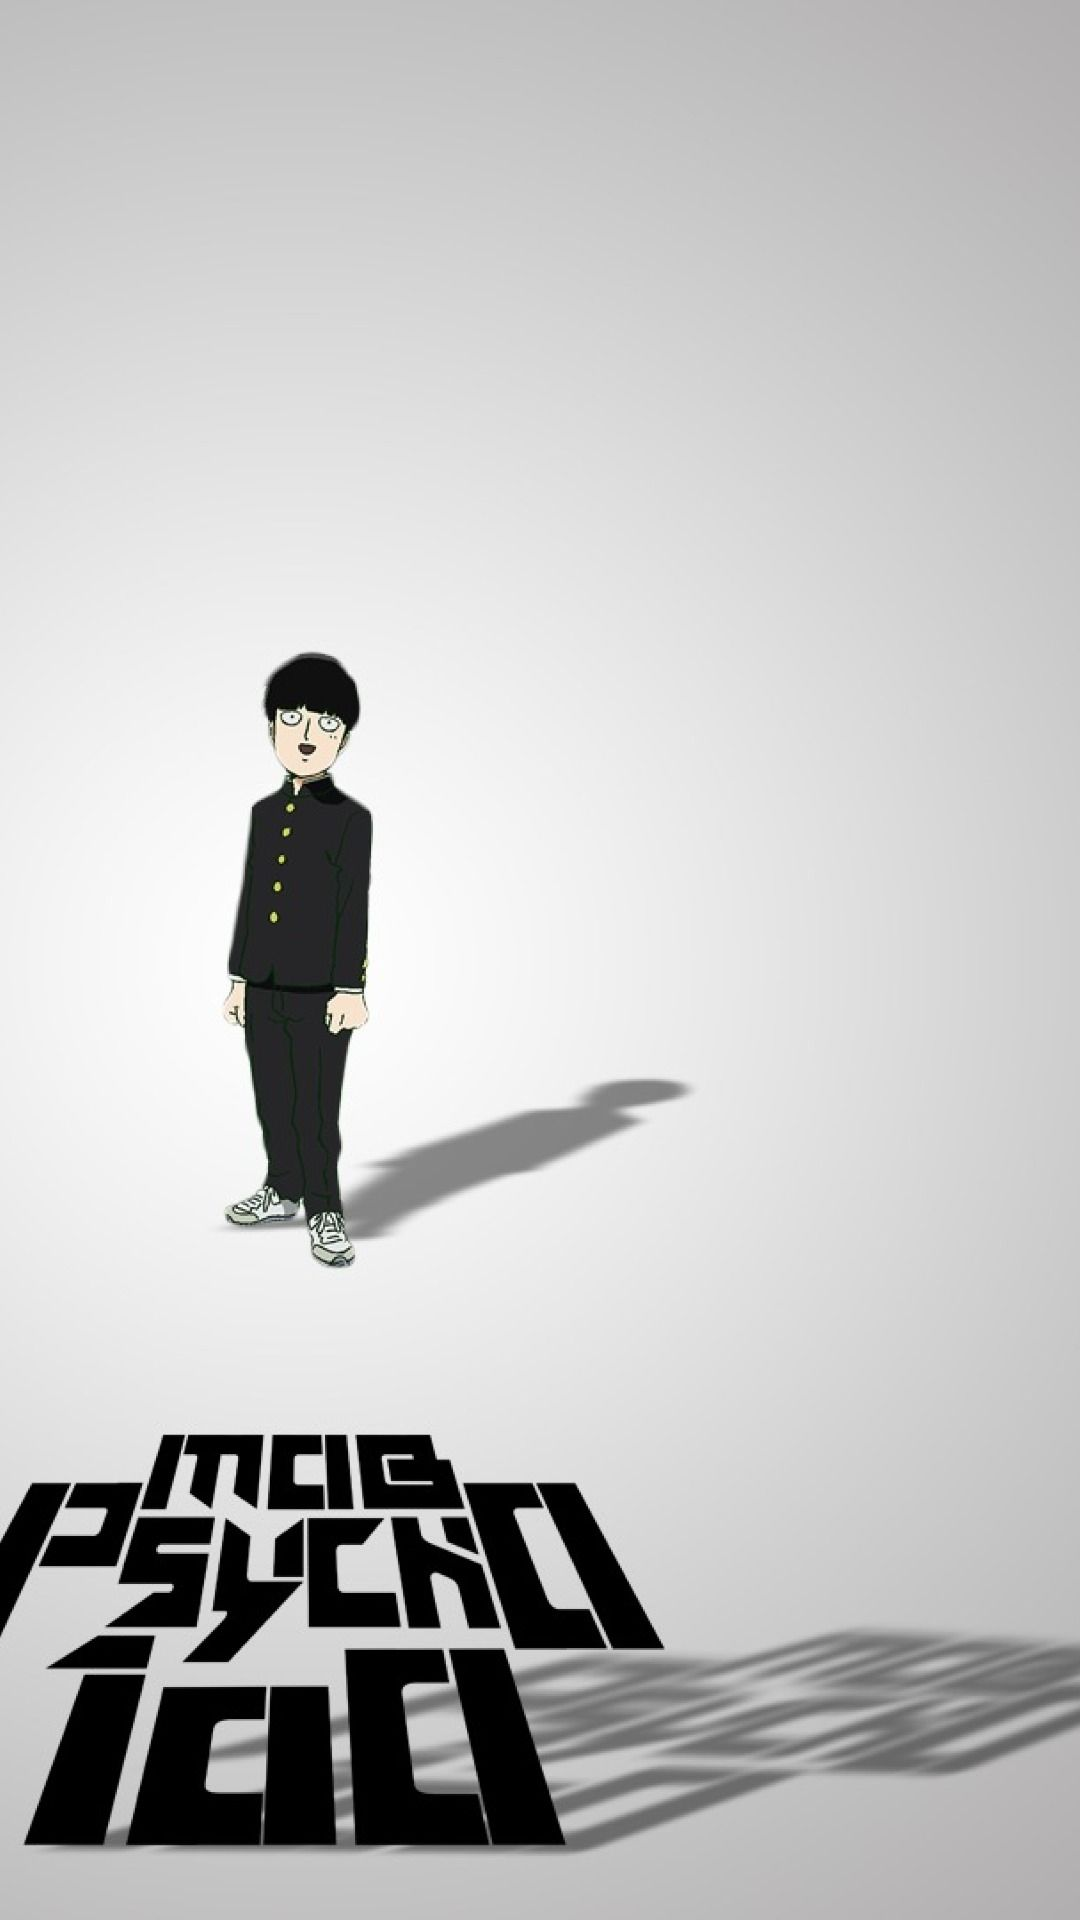 Mob Psycho 100 Iphone Wallpapers 10 Images Wallpaperboat